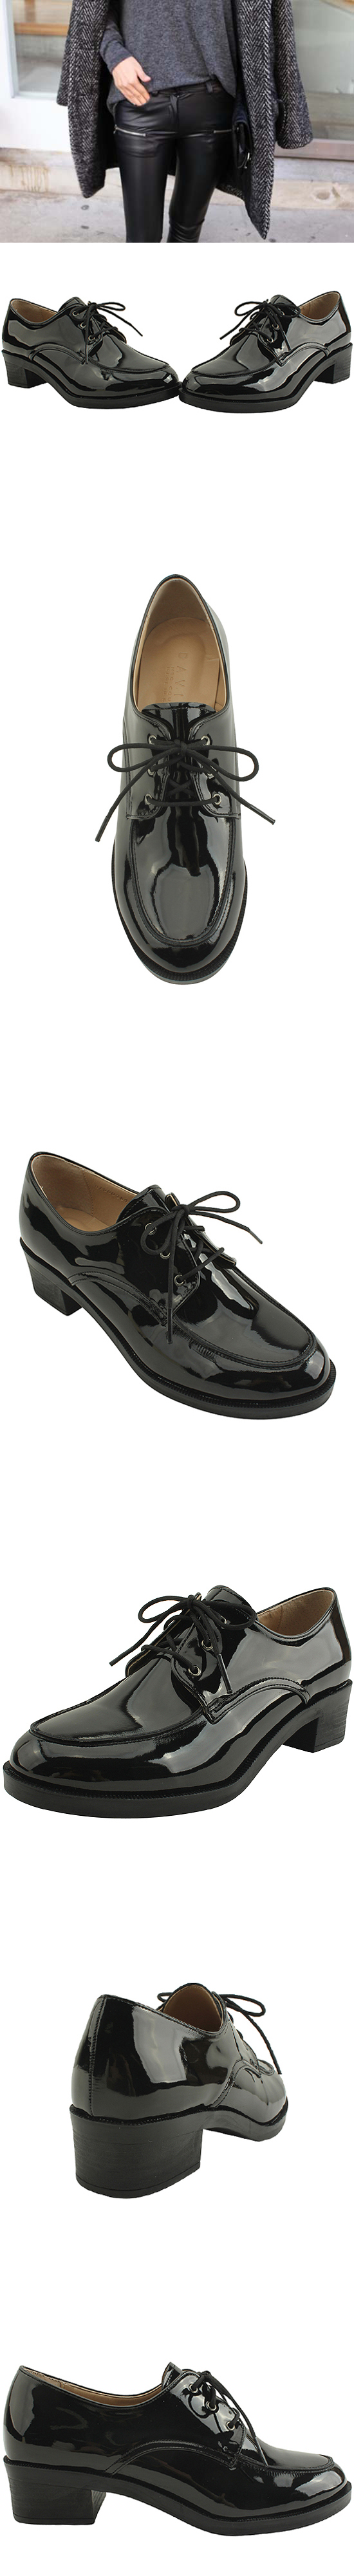 Mannish lace-up loafers black